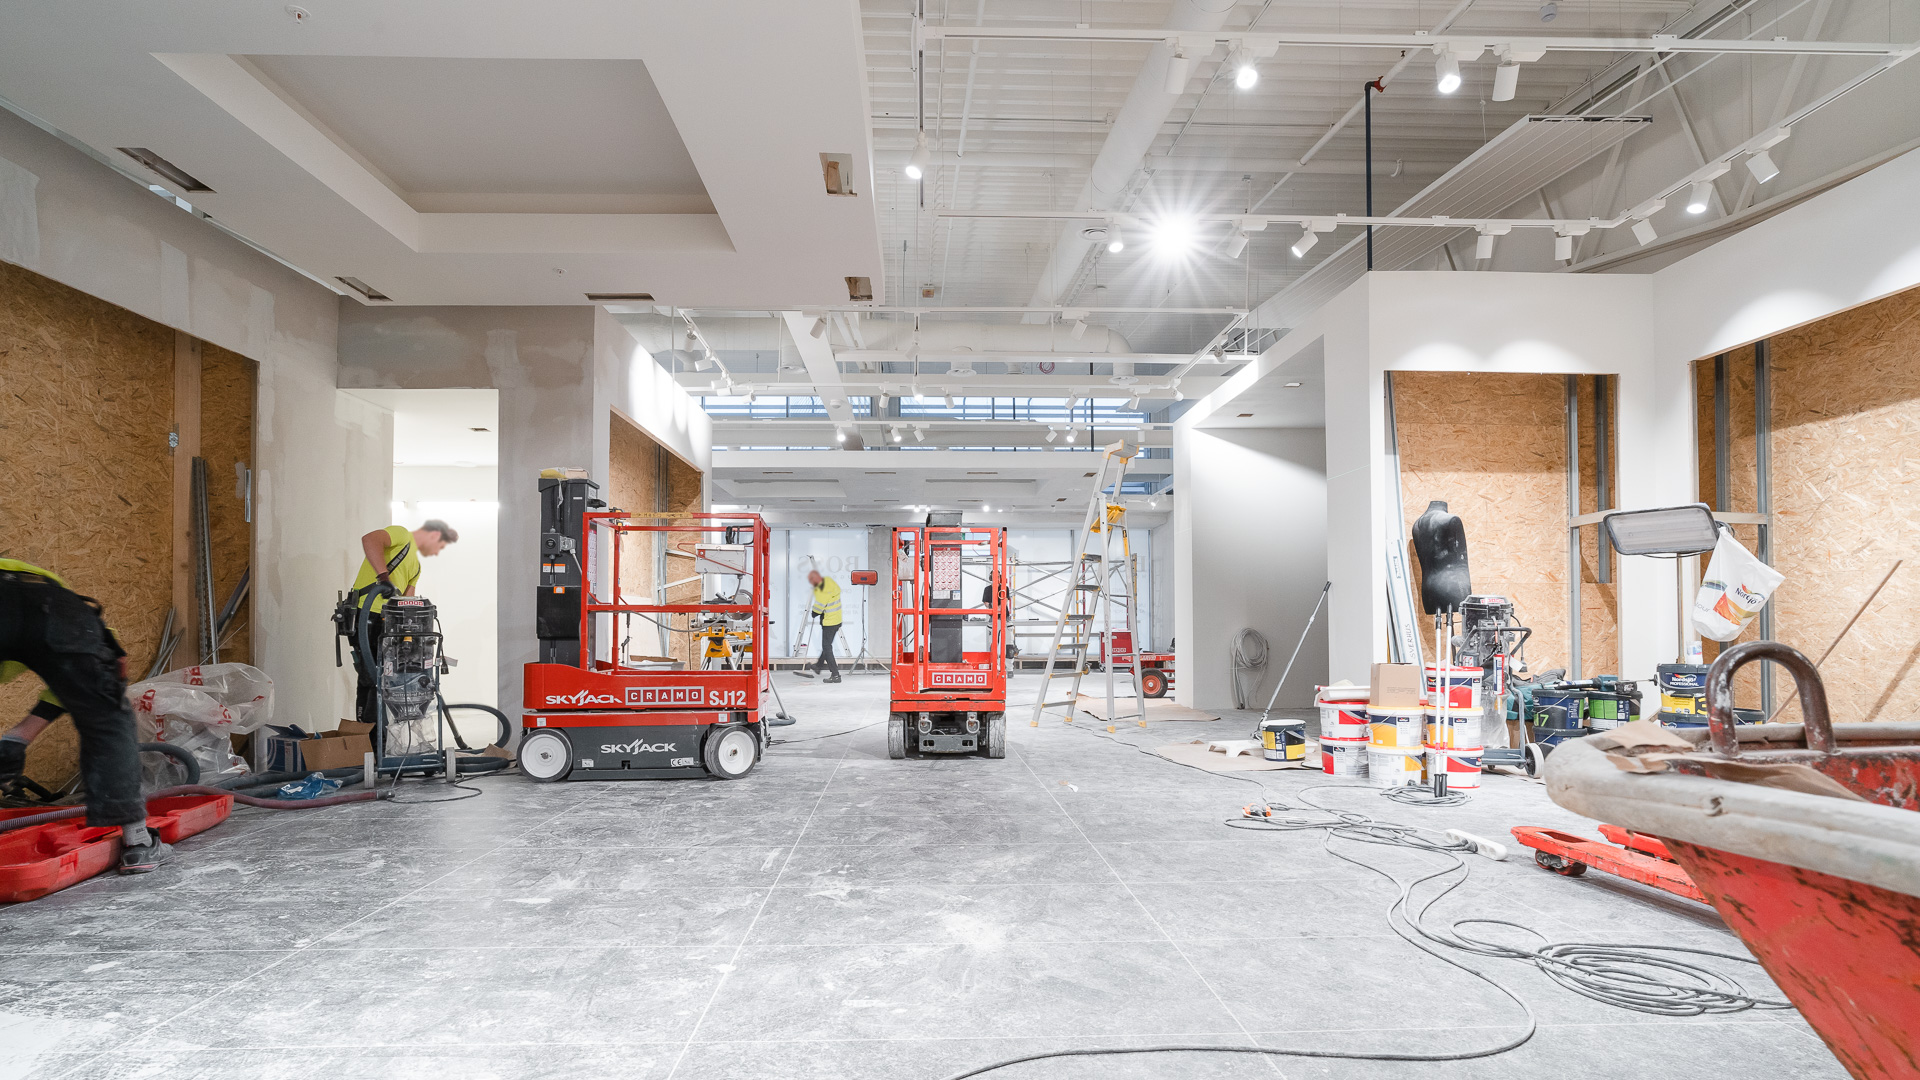 Retail construction project in process